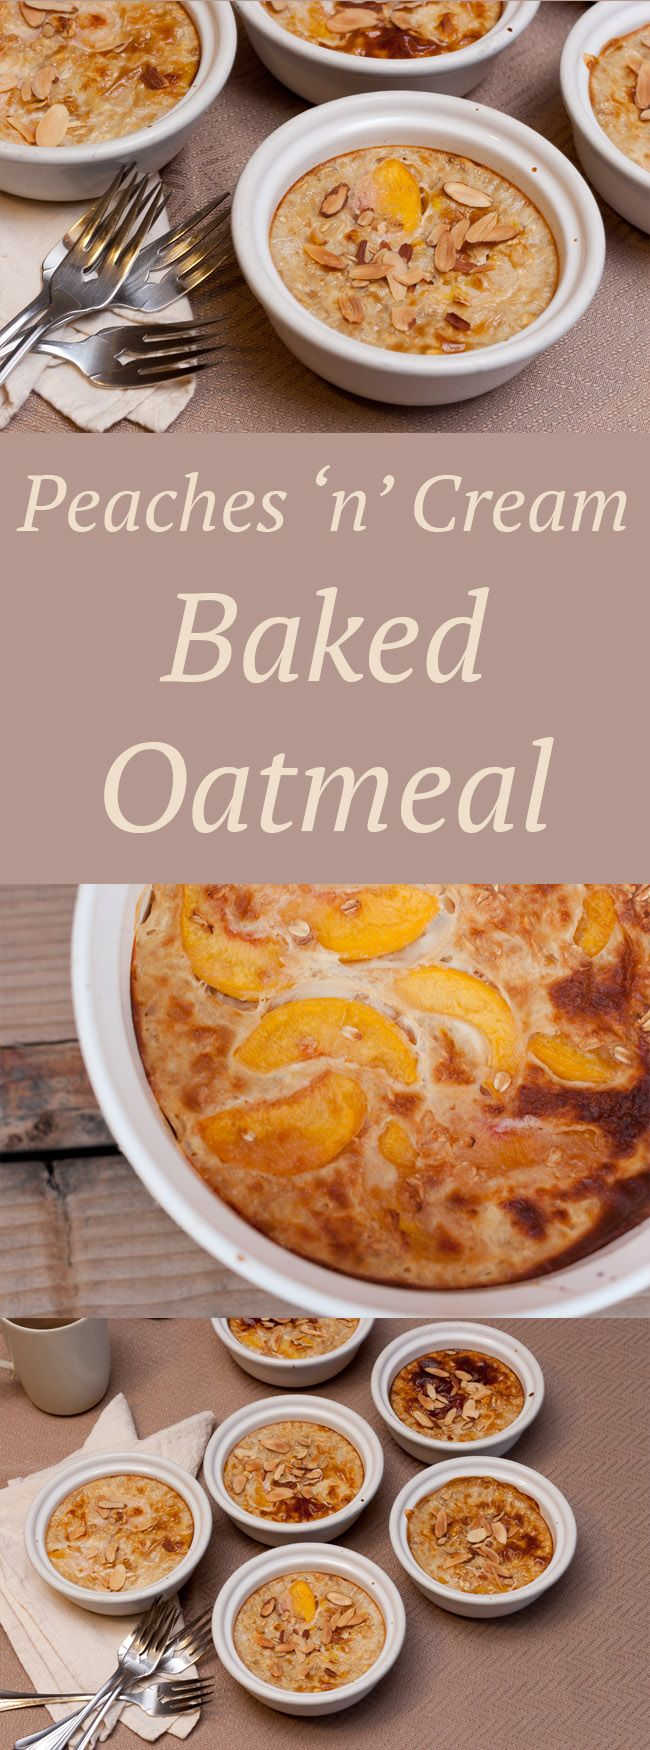 Peaches 'n' Cream Baked Oatmeal makes a great healthy breakfast that your family will love!